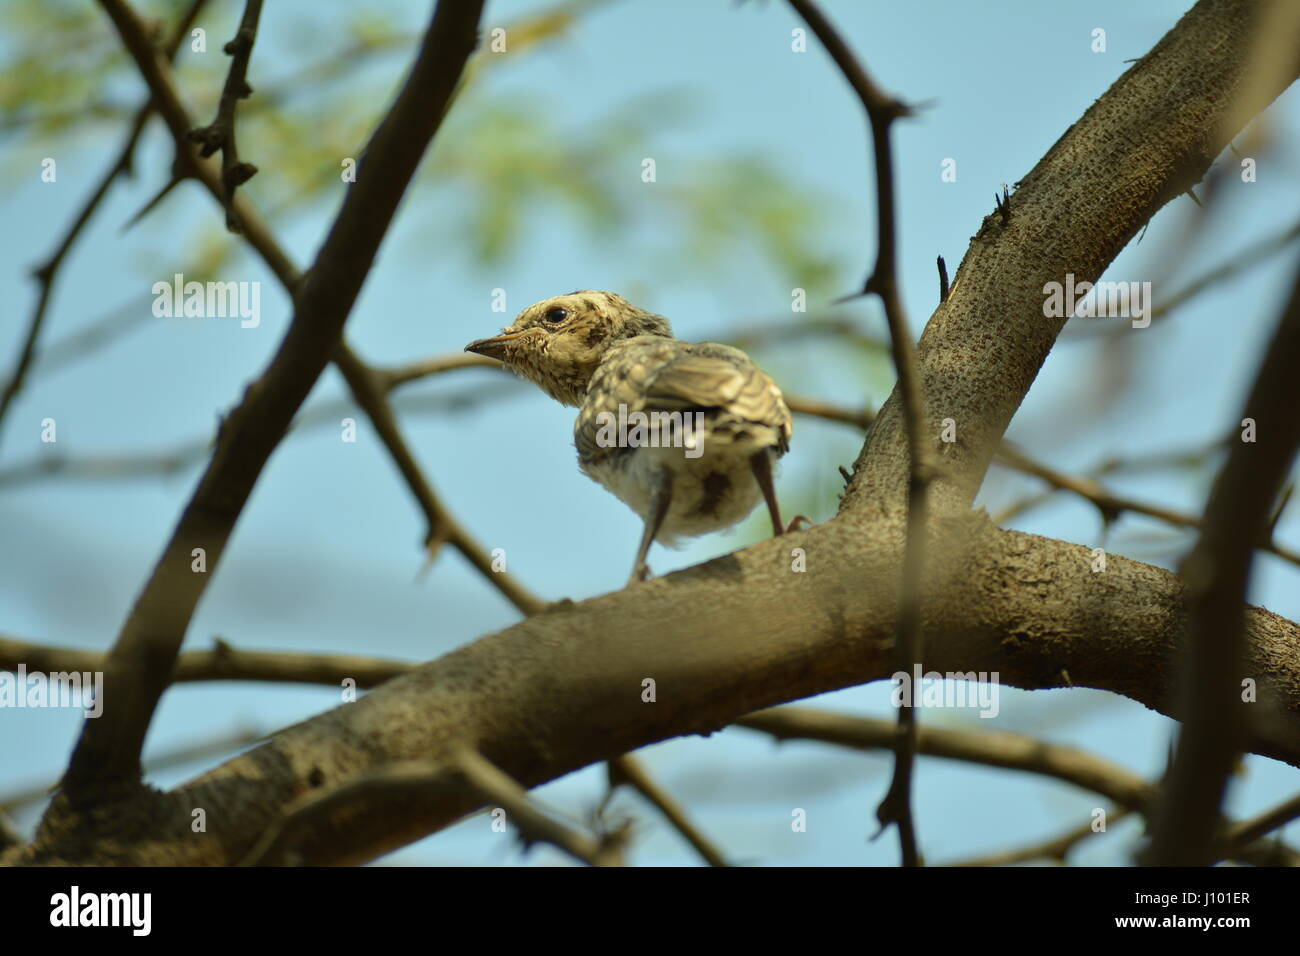 The Indian Birds - Stock Image